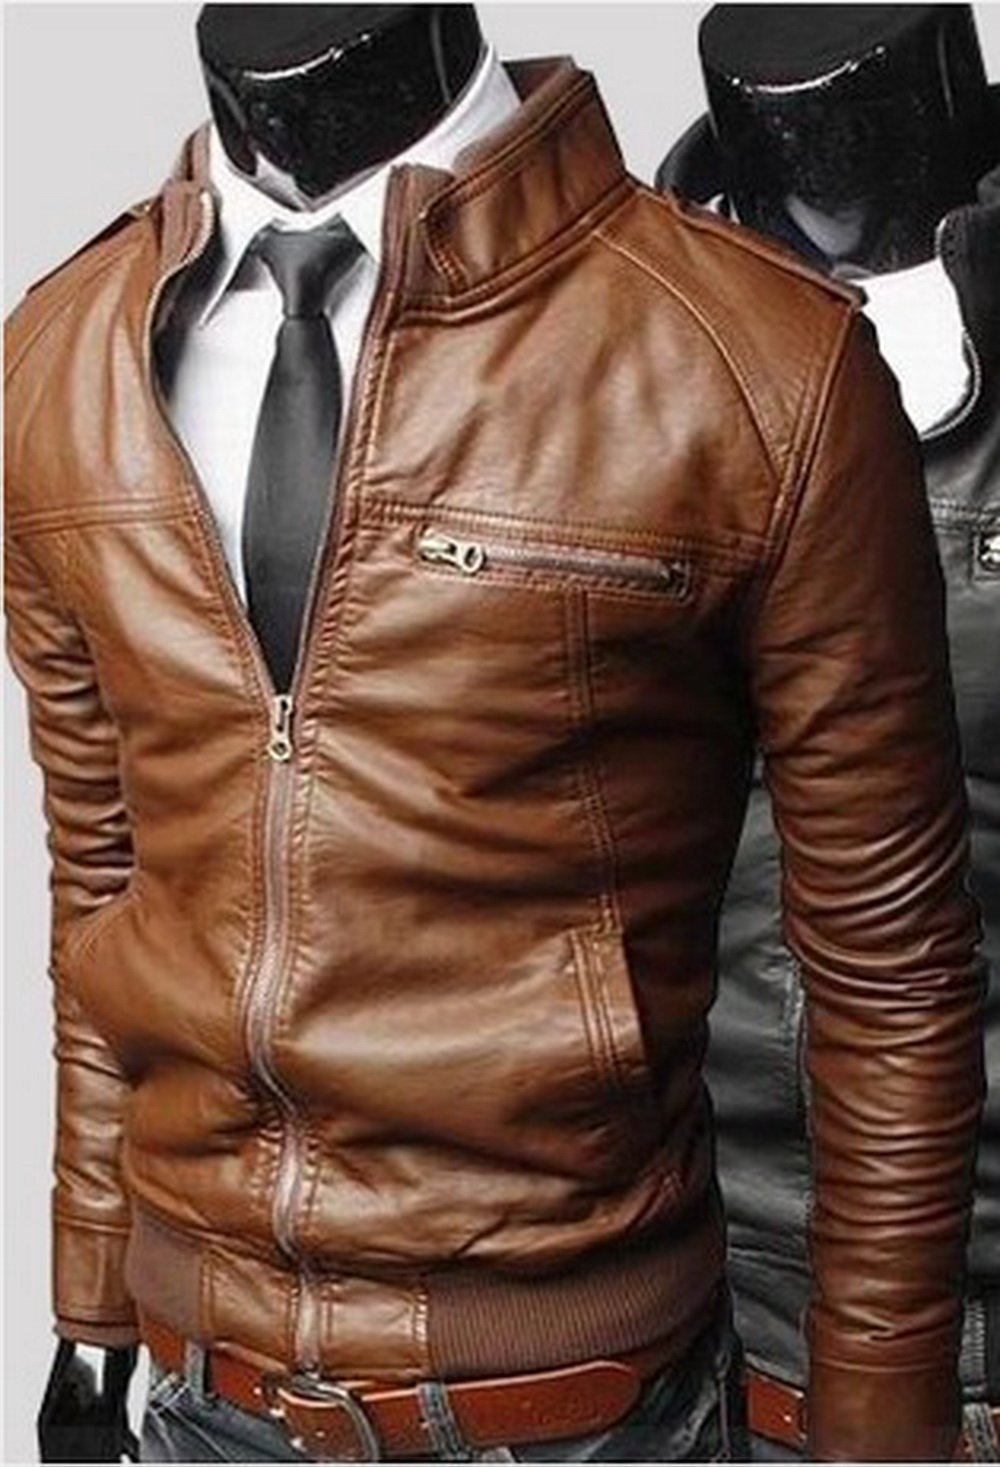 Amazon.com : Jacket Men Leather Jacket Collar Men's Leather ...